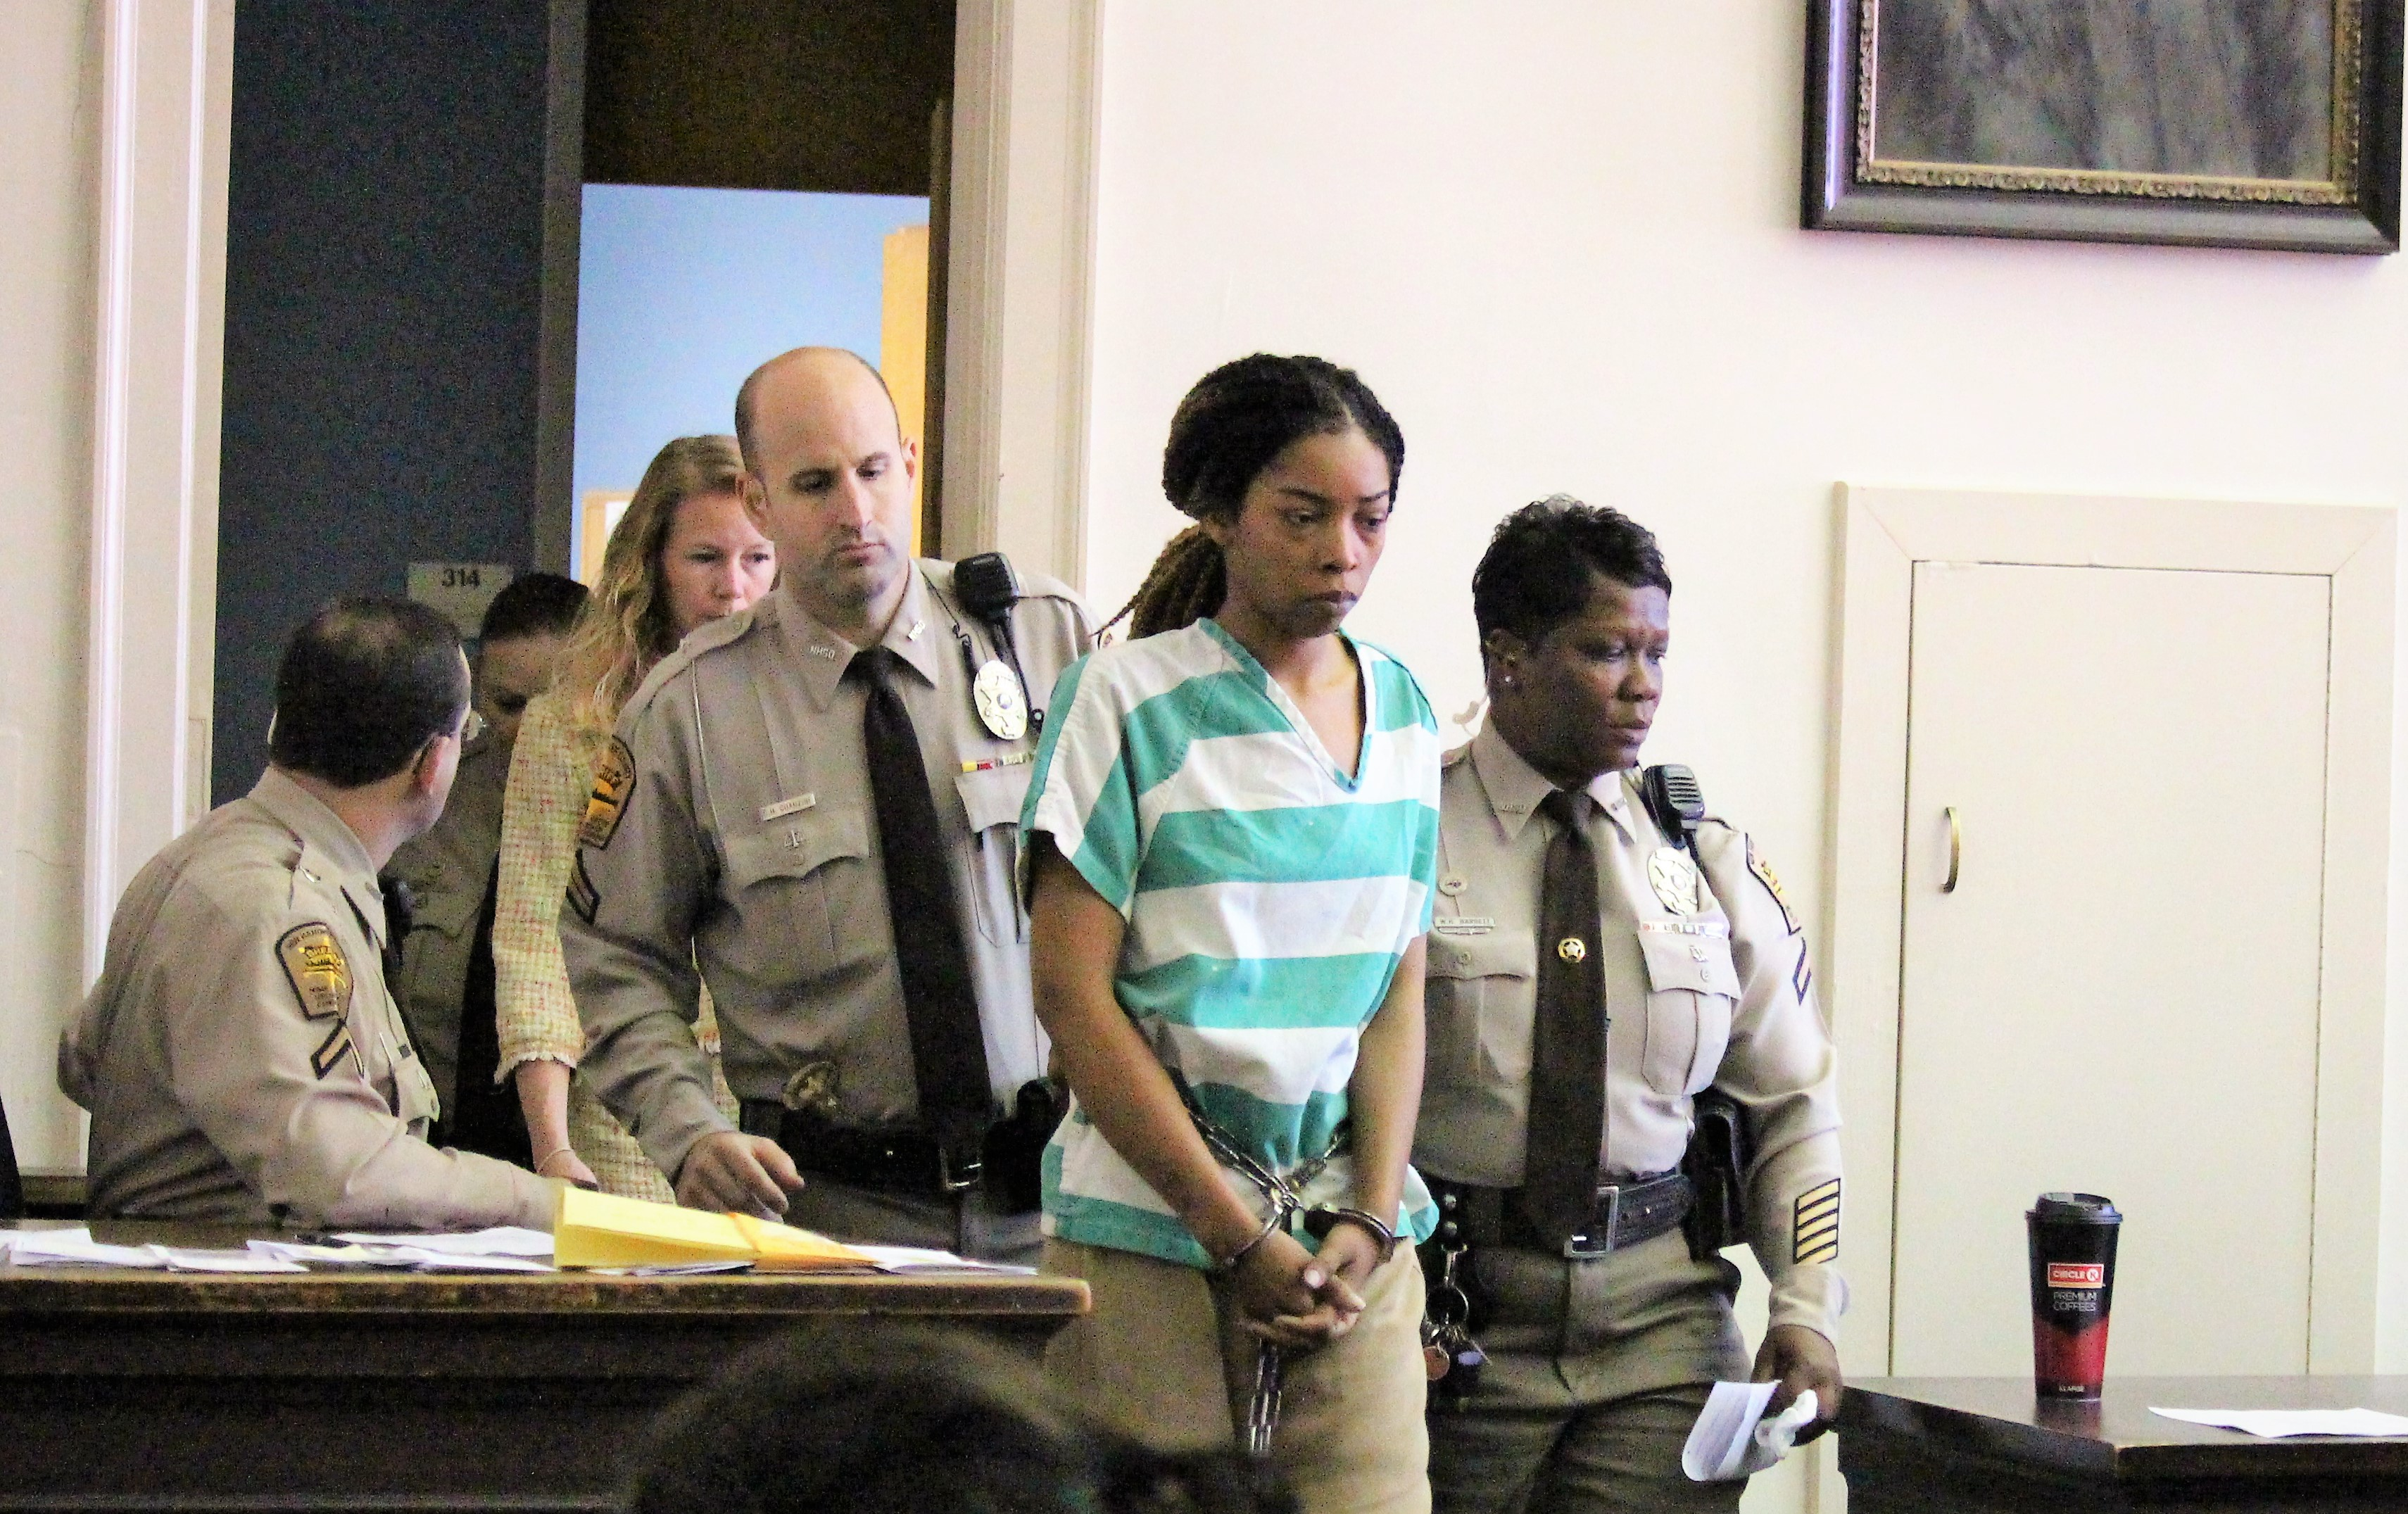 Traneta Campbell made her first appearance in New Hanover County District court, for the fatal April 1 shooting of Catherine Ballard in the parking lot of Independence Mall. (Photo by Christina Haley.)